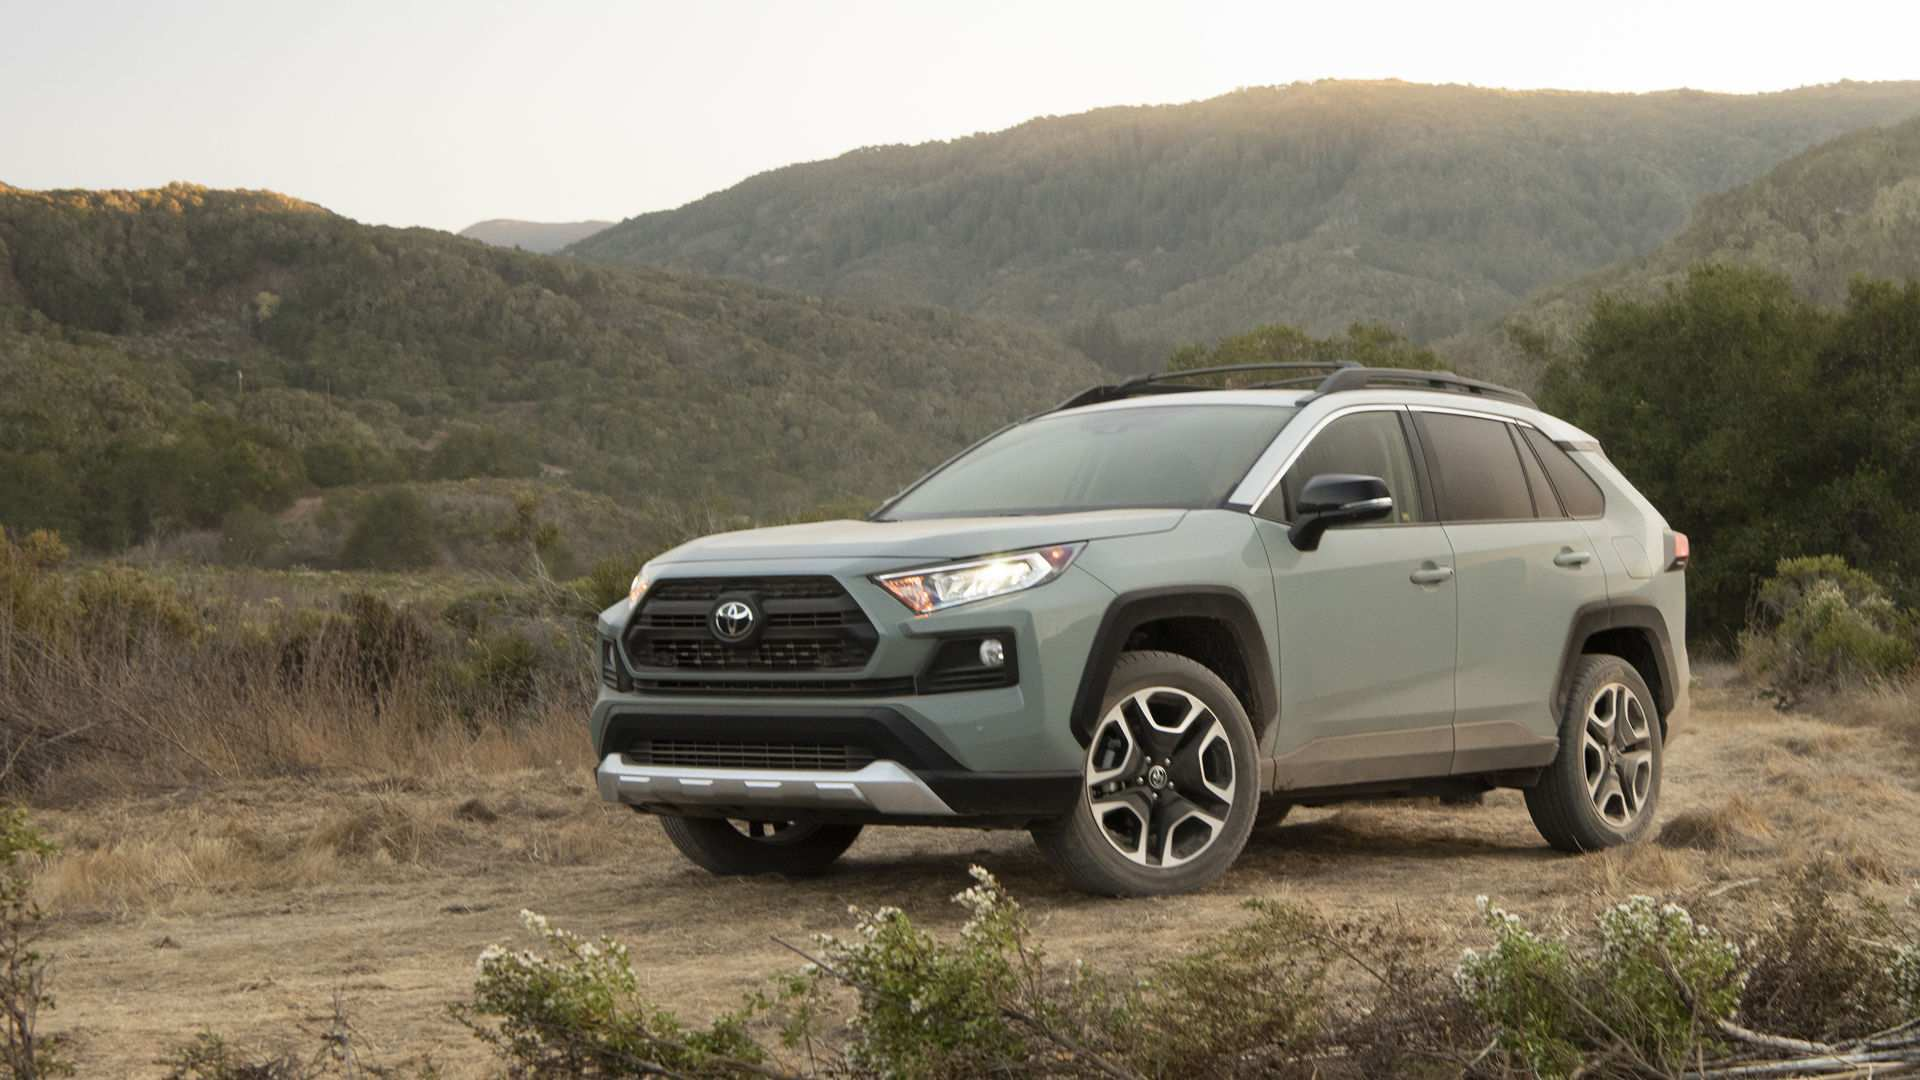 72 Gallery of 2019 Toyota Rav4 Specs Picture Release Date And Review Specs and Review with 2019 Toyota Rav4 Specs Picture Release Date And Review